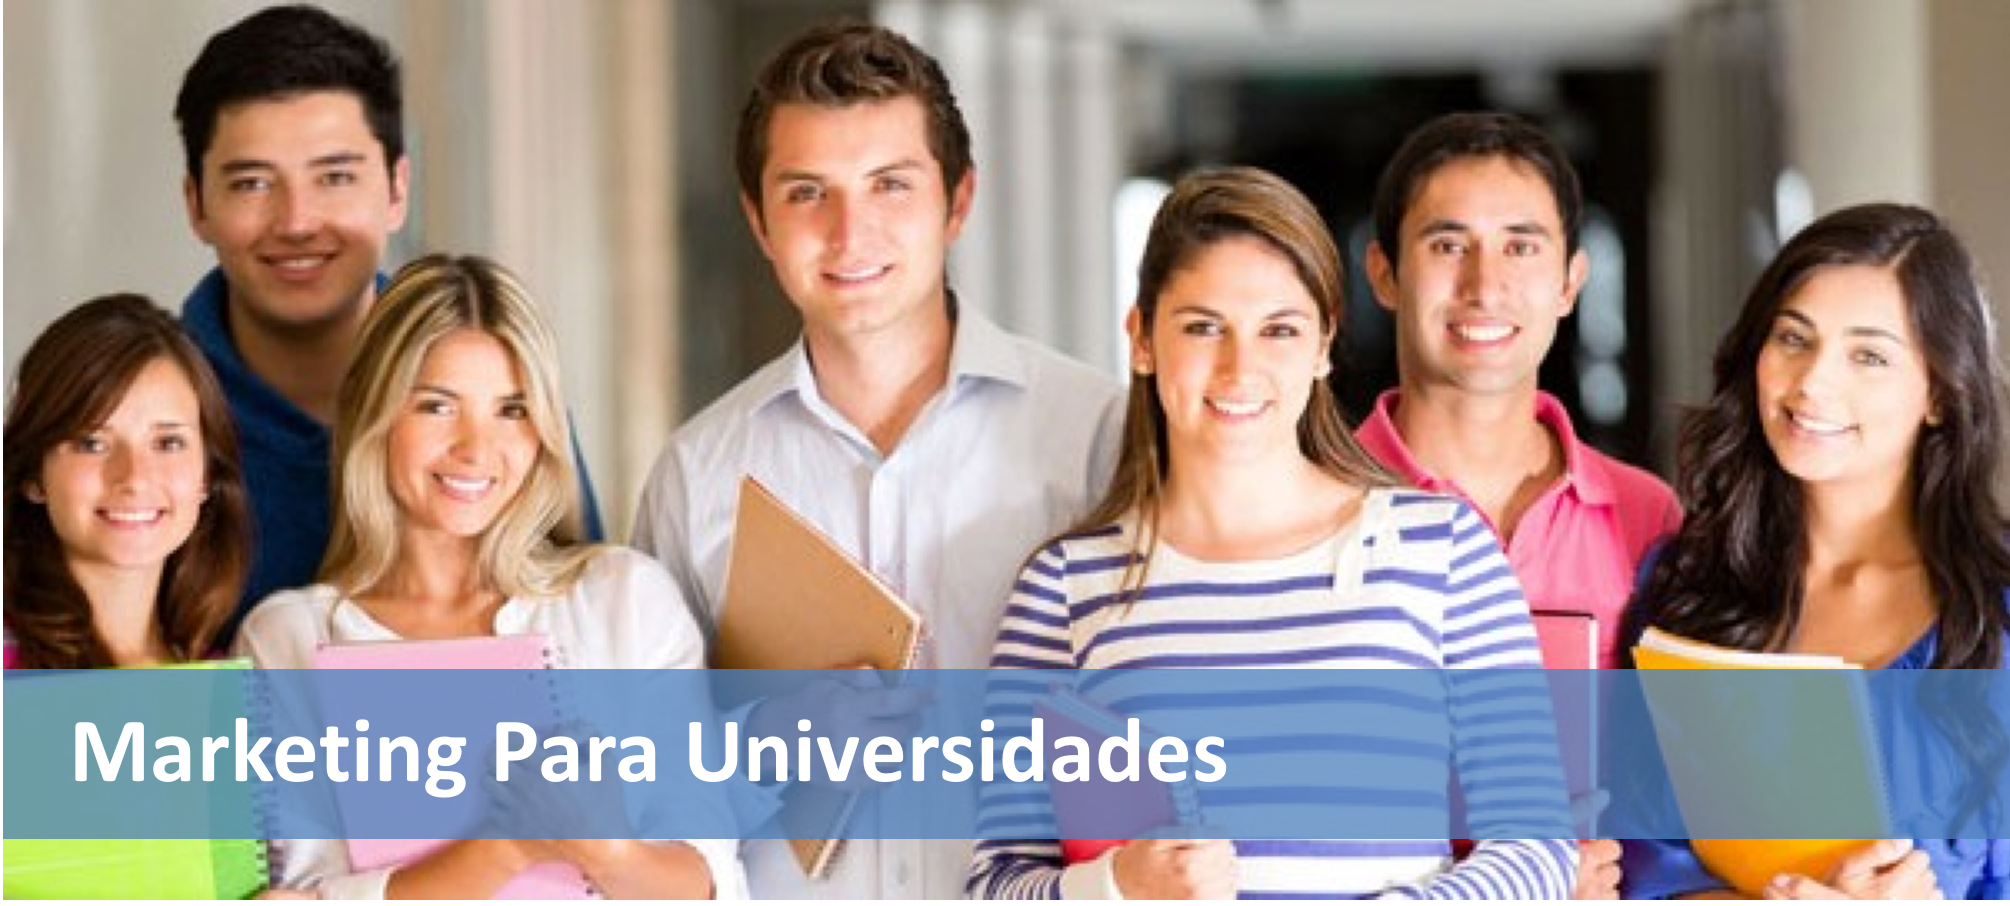 Estrategia de Marketing Integrado para Universidades